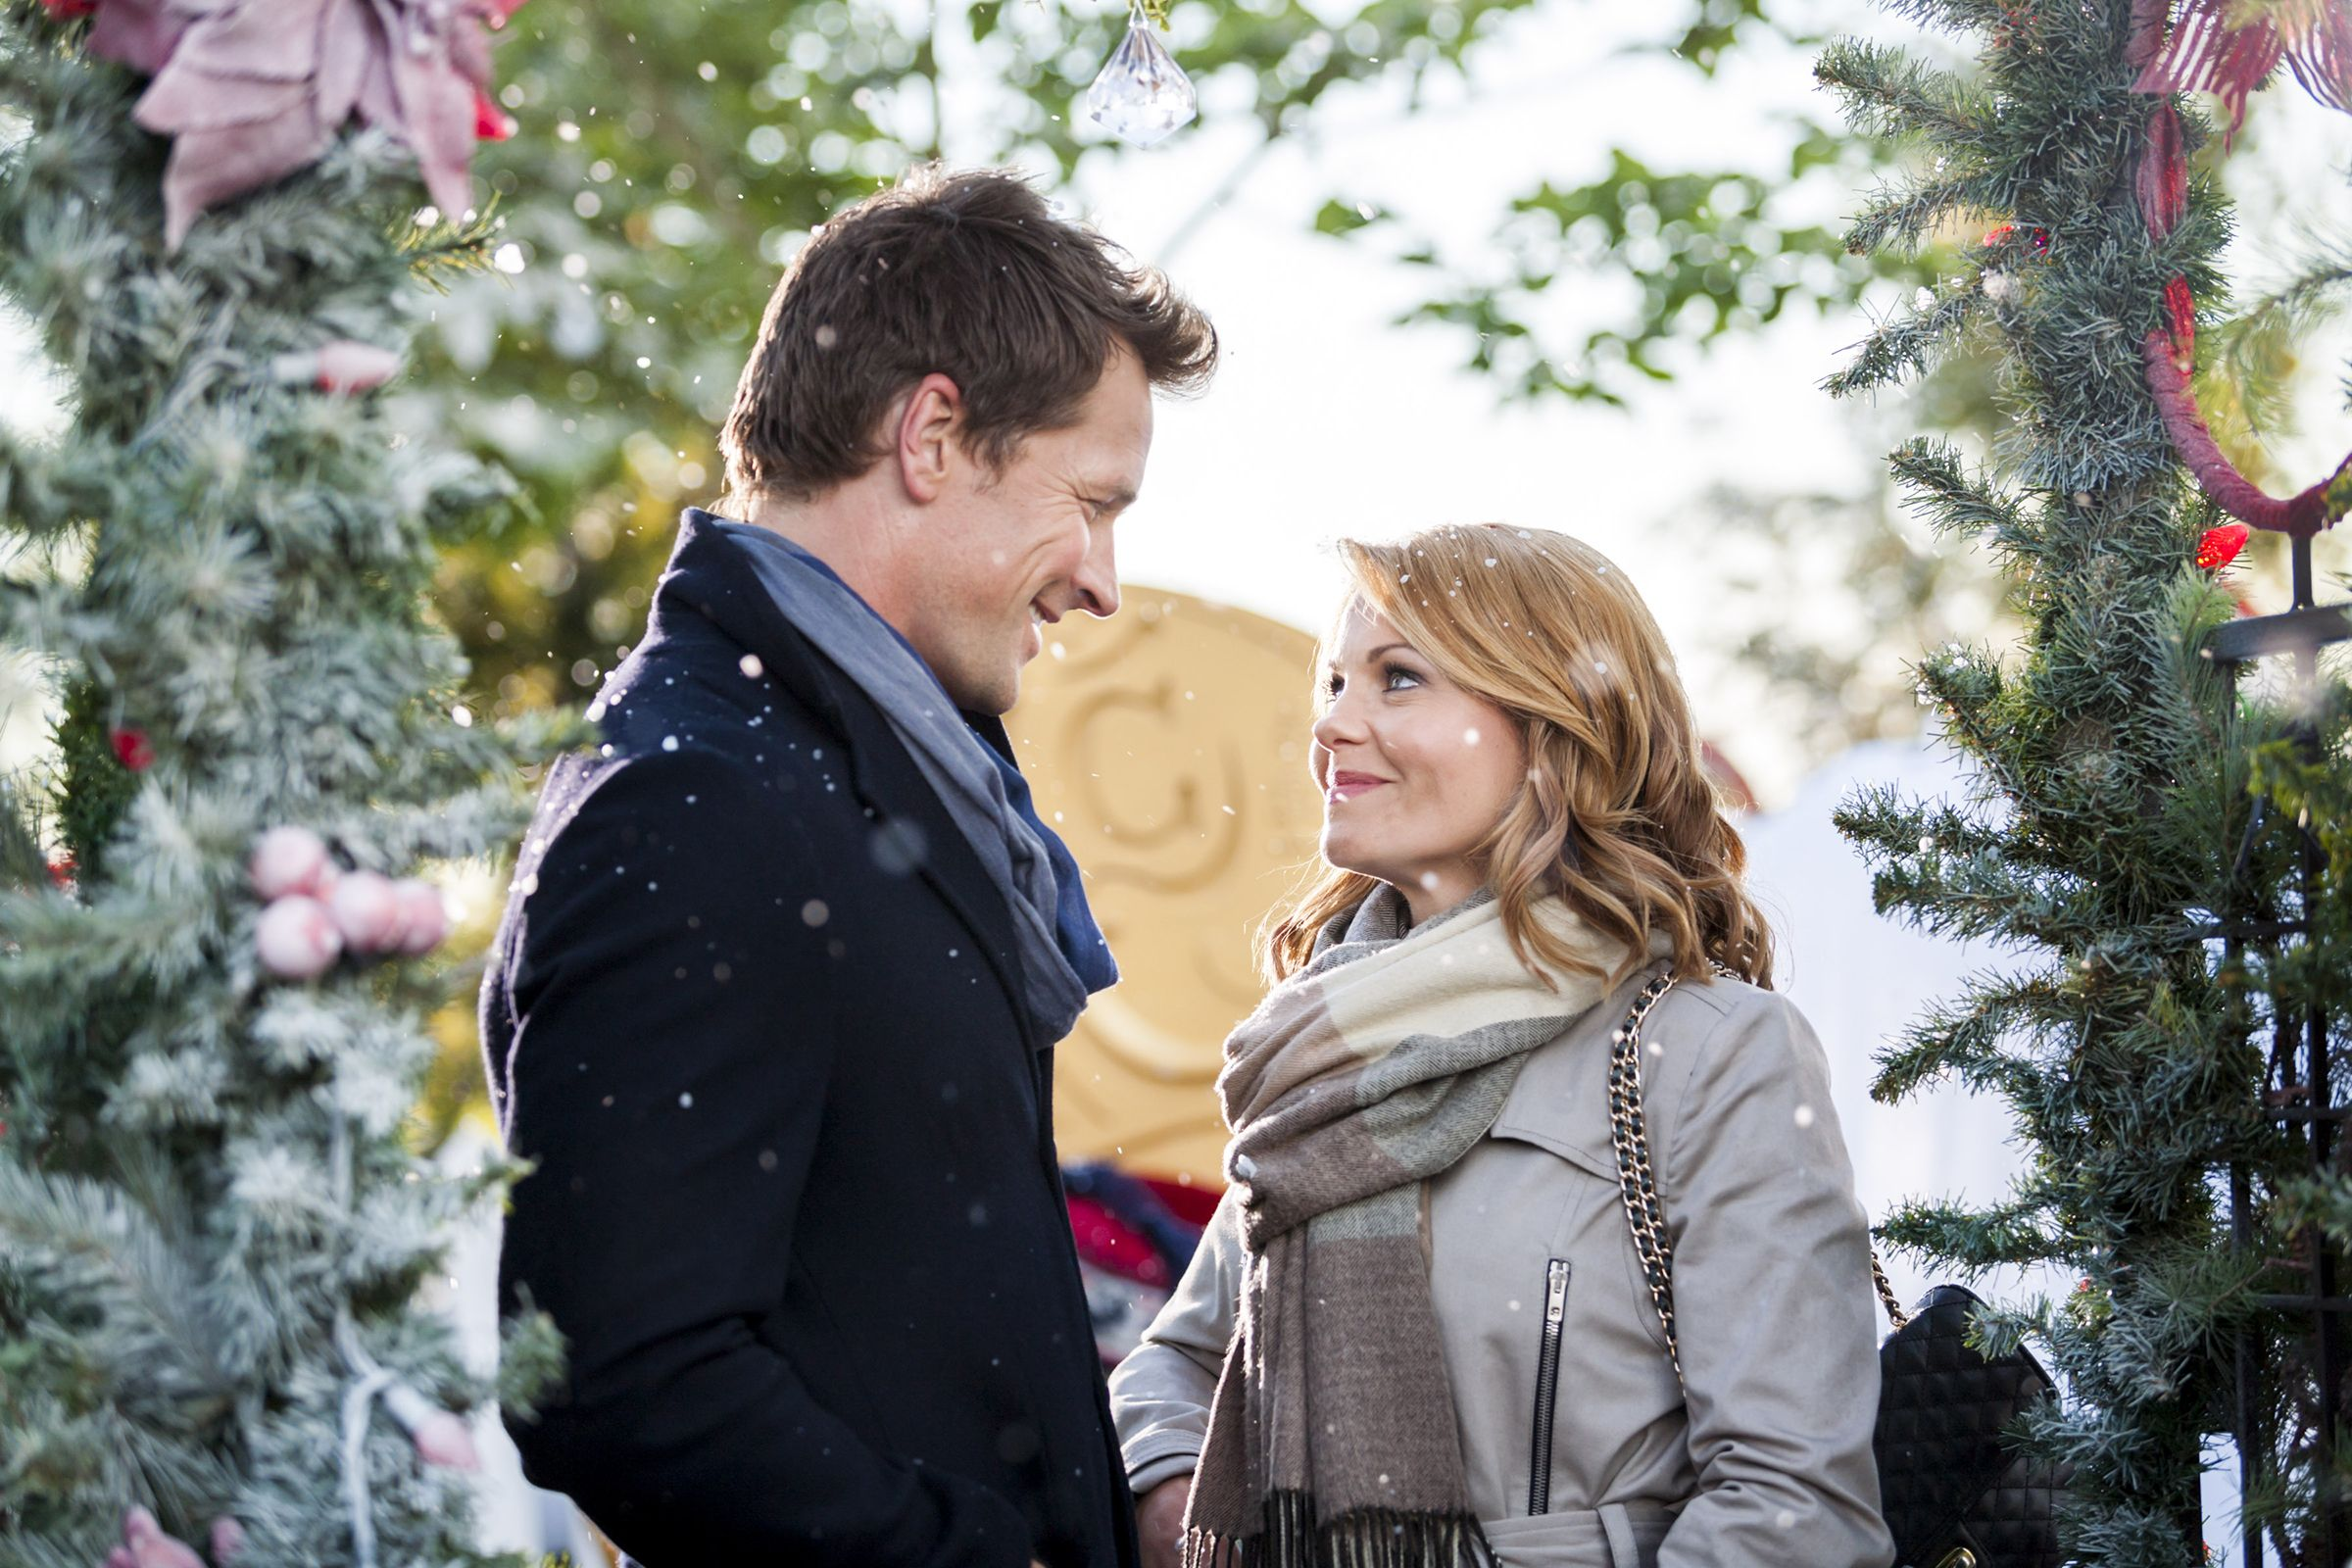 Christmas In July 2019 Images.Hallmark Christmas In July Schedule 2019 Hallmark Christmas In